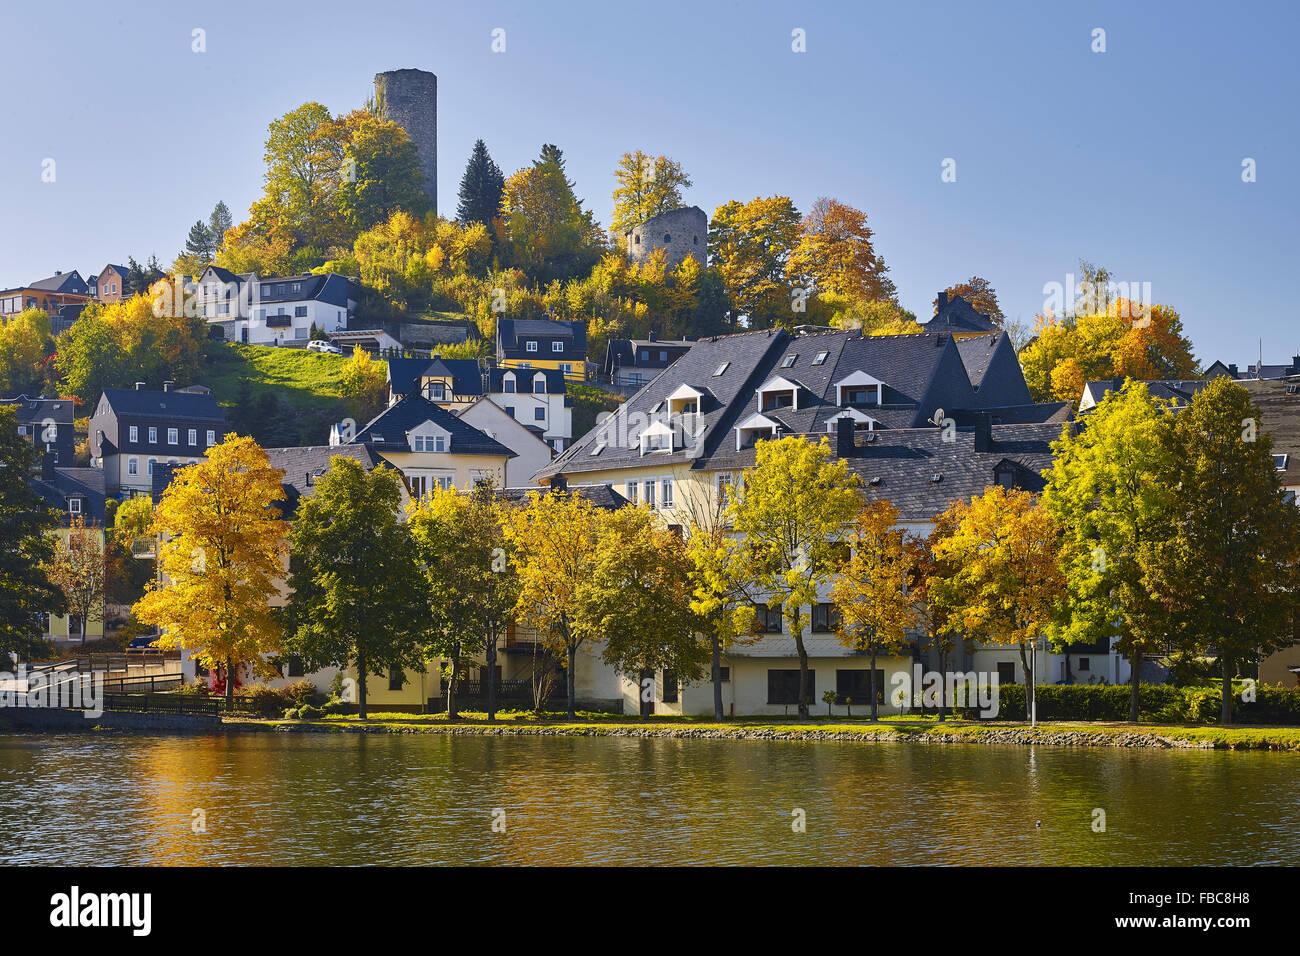 Castle in Bad Lobenstein, Thuringia, Germany - Stock Image